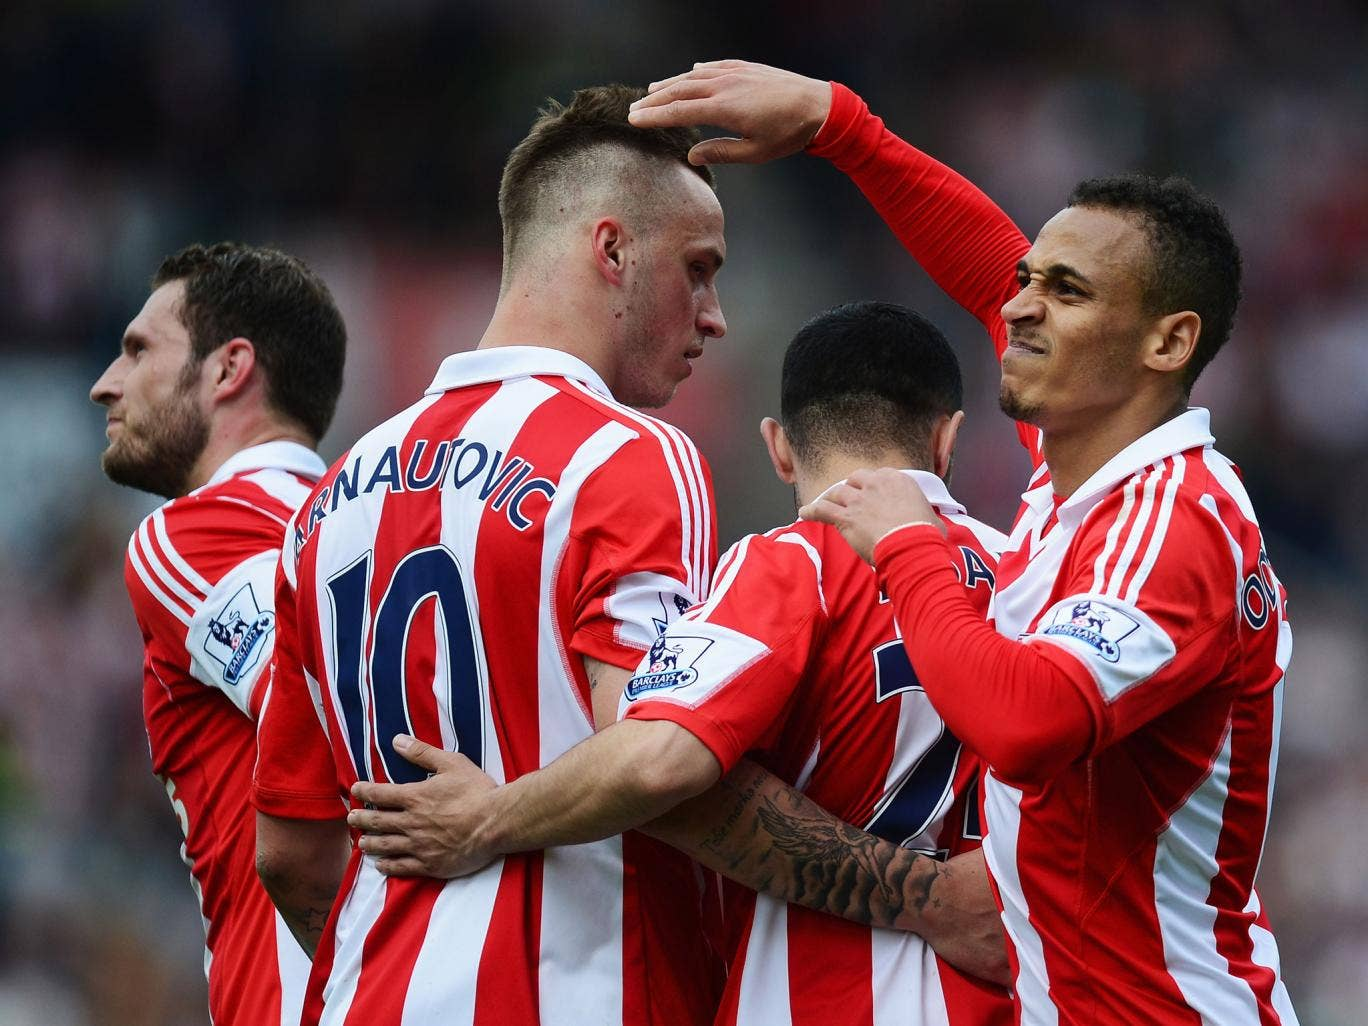 Stoke players celebrate after Peter Odemwingie's opening goal